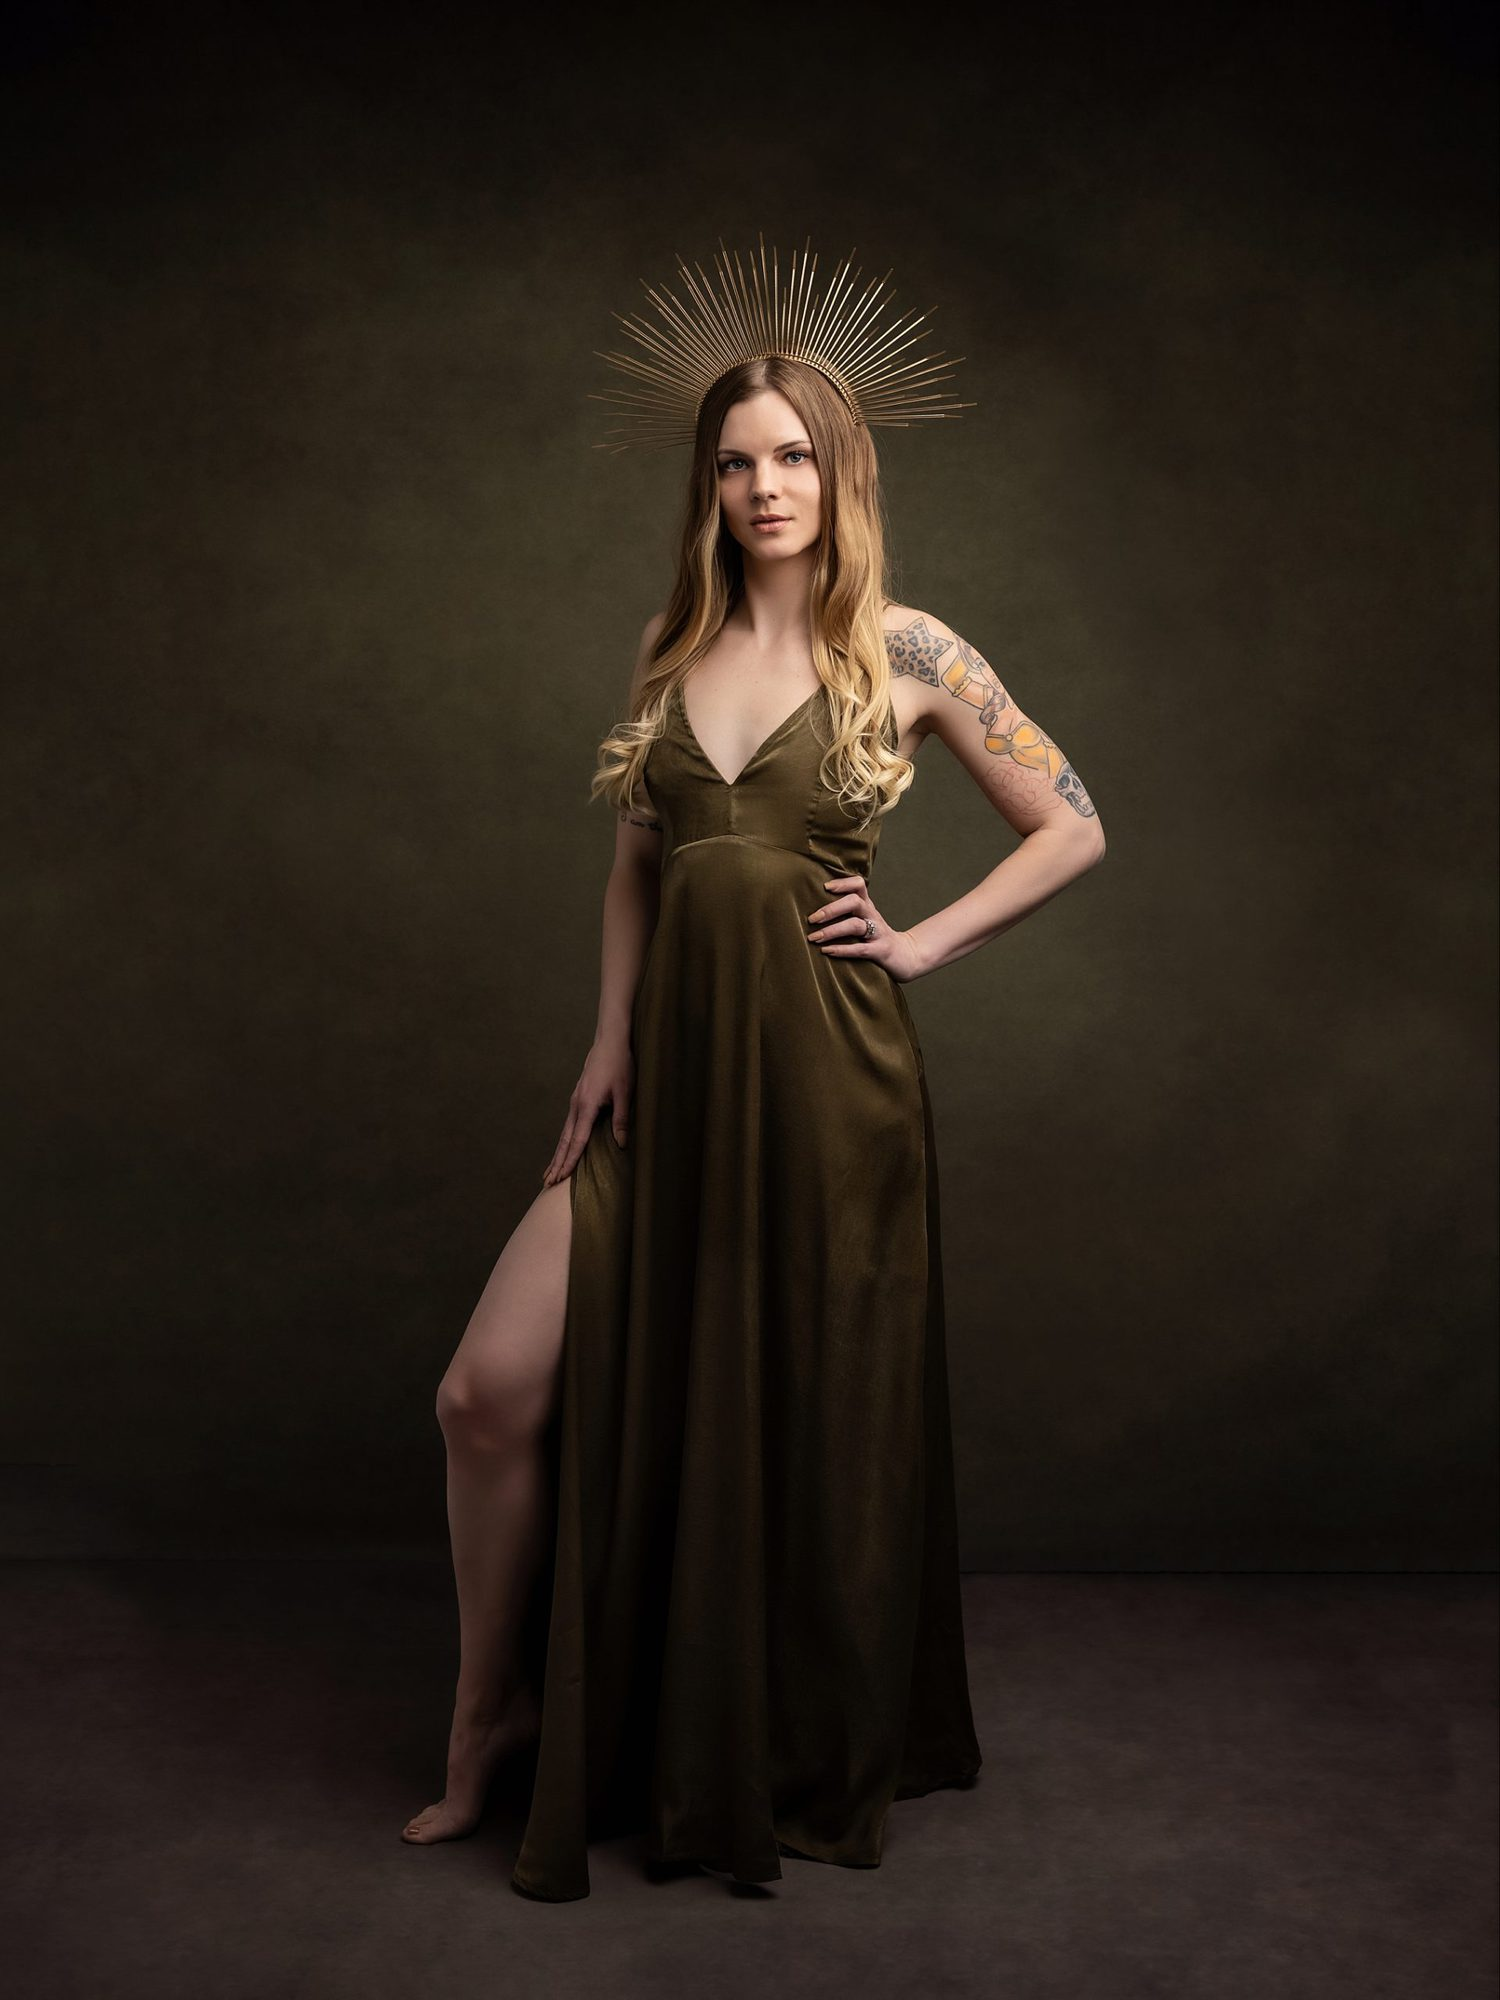 Beautiful woman in a olive silk dress and gold crown poses for a beauty shoot on a green background in Suffolk studio